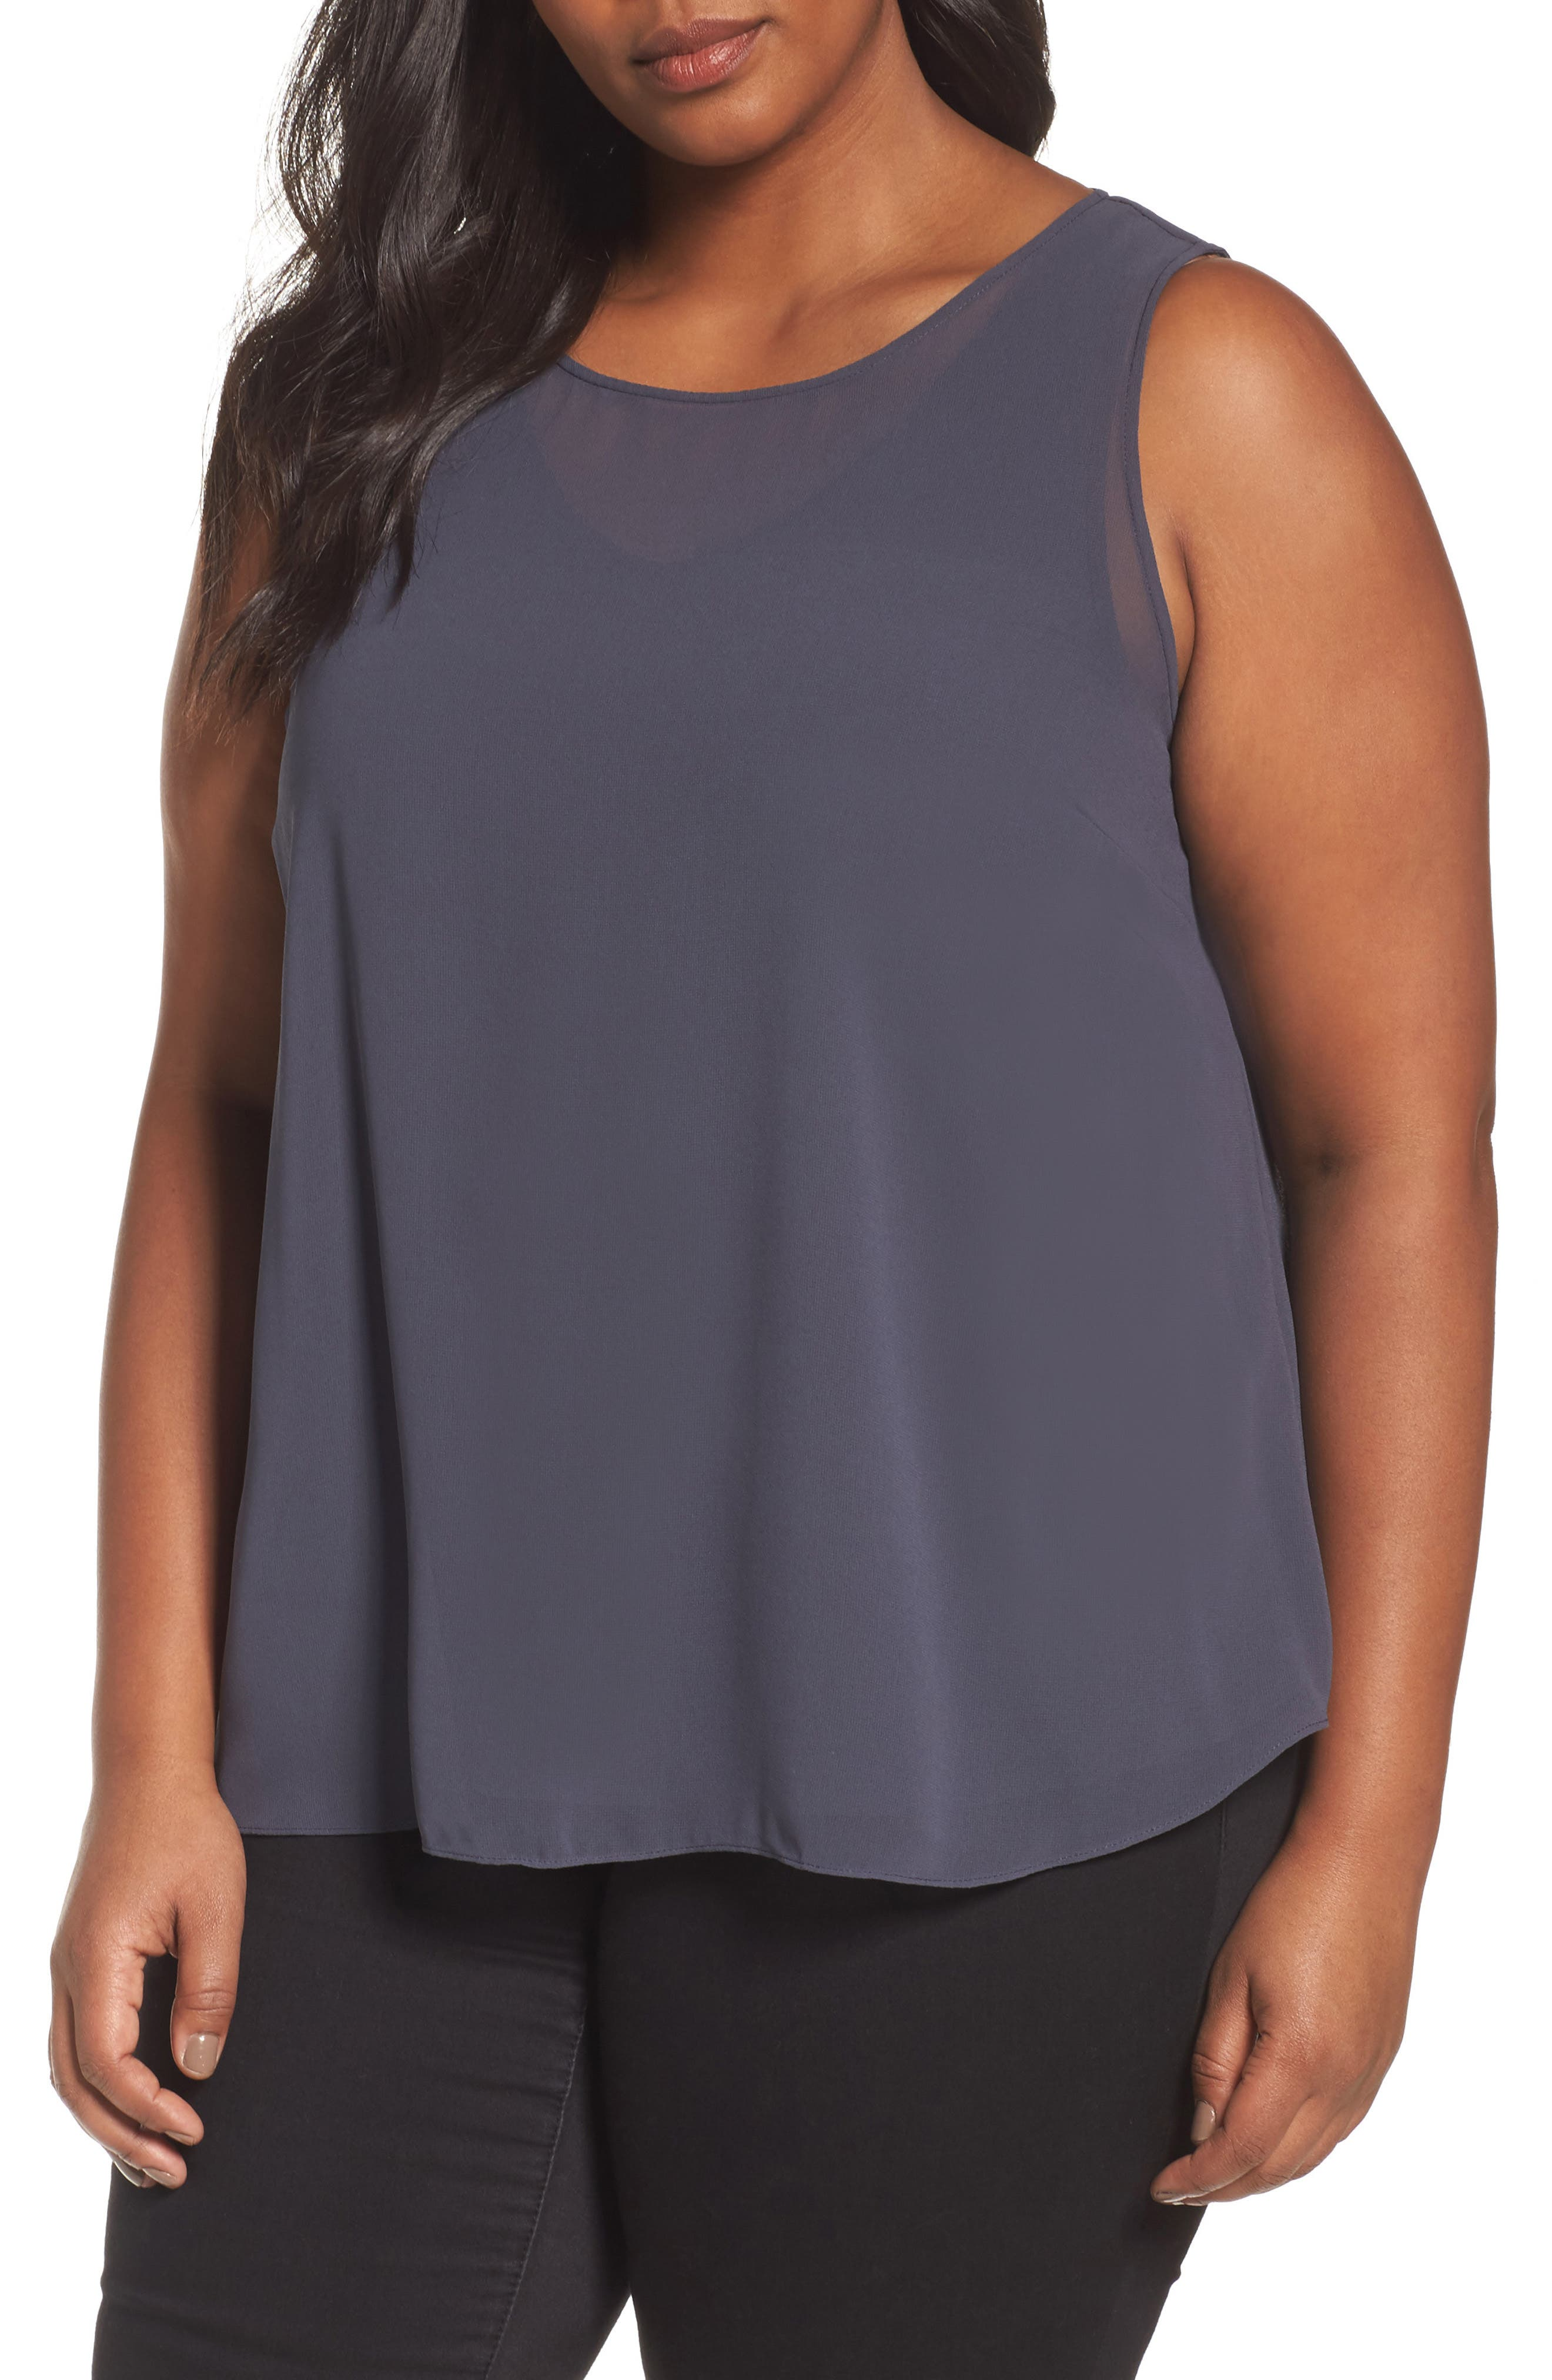 Sheer Collection Top,                         Main,                         color, 020